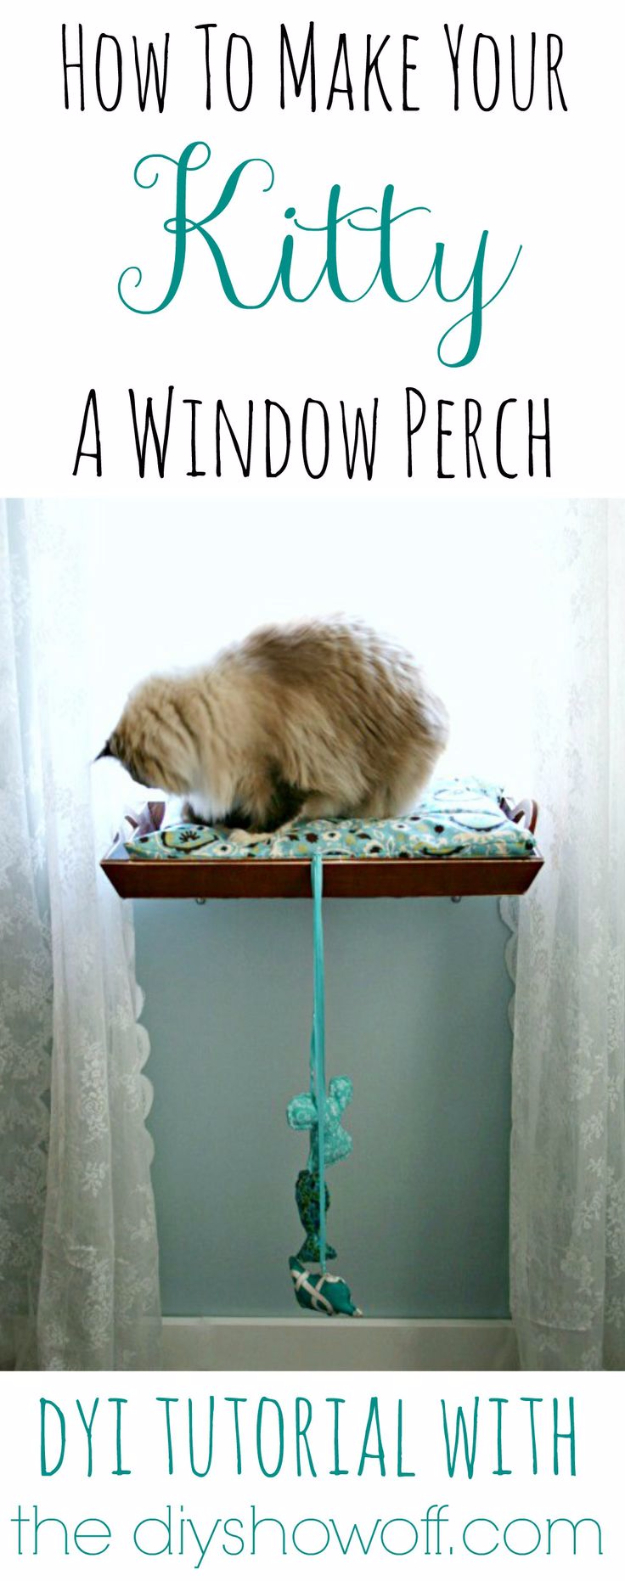 DIY Cat Hacks - Make A Window Perch For Your Kitty - Tips and Tricks Ideas for Cat Beds and Toys, Homemade Remedies for Fleas and Scratching - Do It Yourself Cat Treat Recips, Food and Gear for Your Pet - Cool Gifts for Cats #cathacks #cats #pets